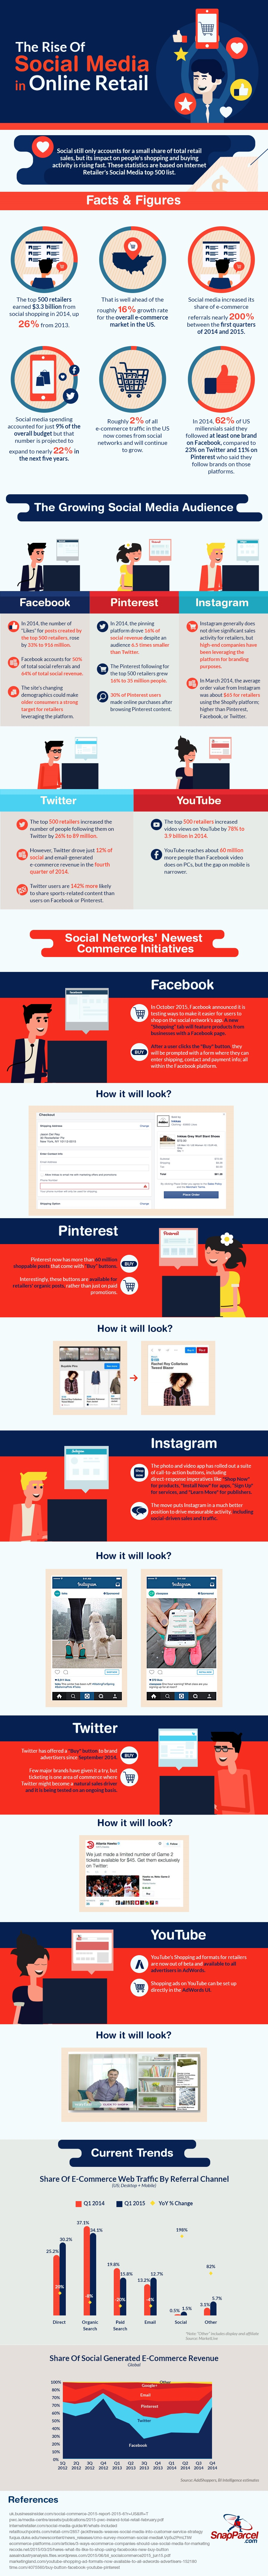 The-Rise-of-Social-Media-in-Online-Retail-infographic-plaza